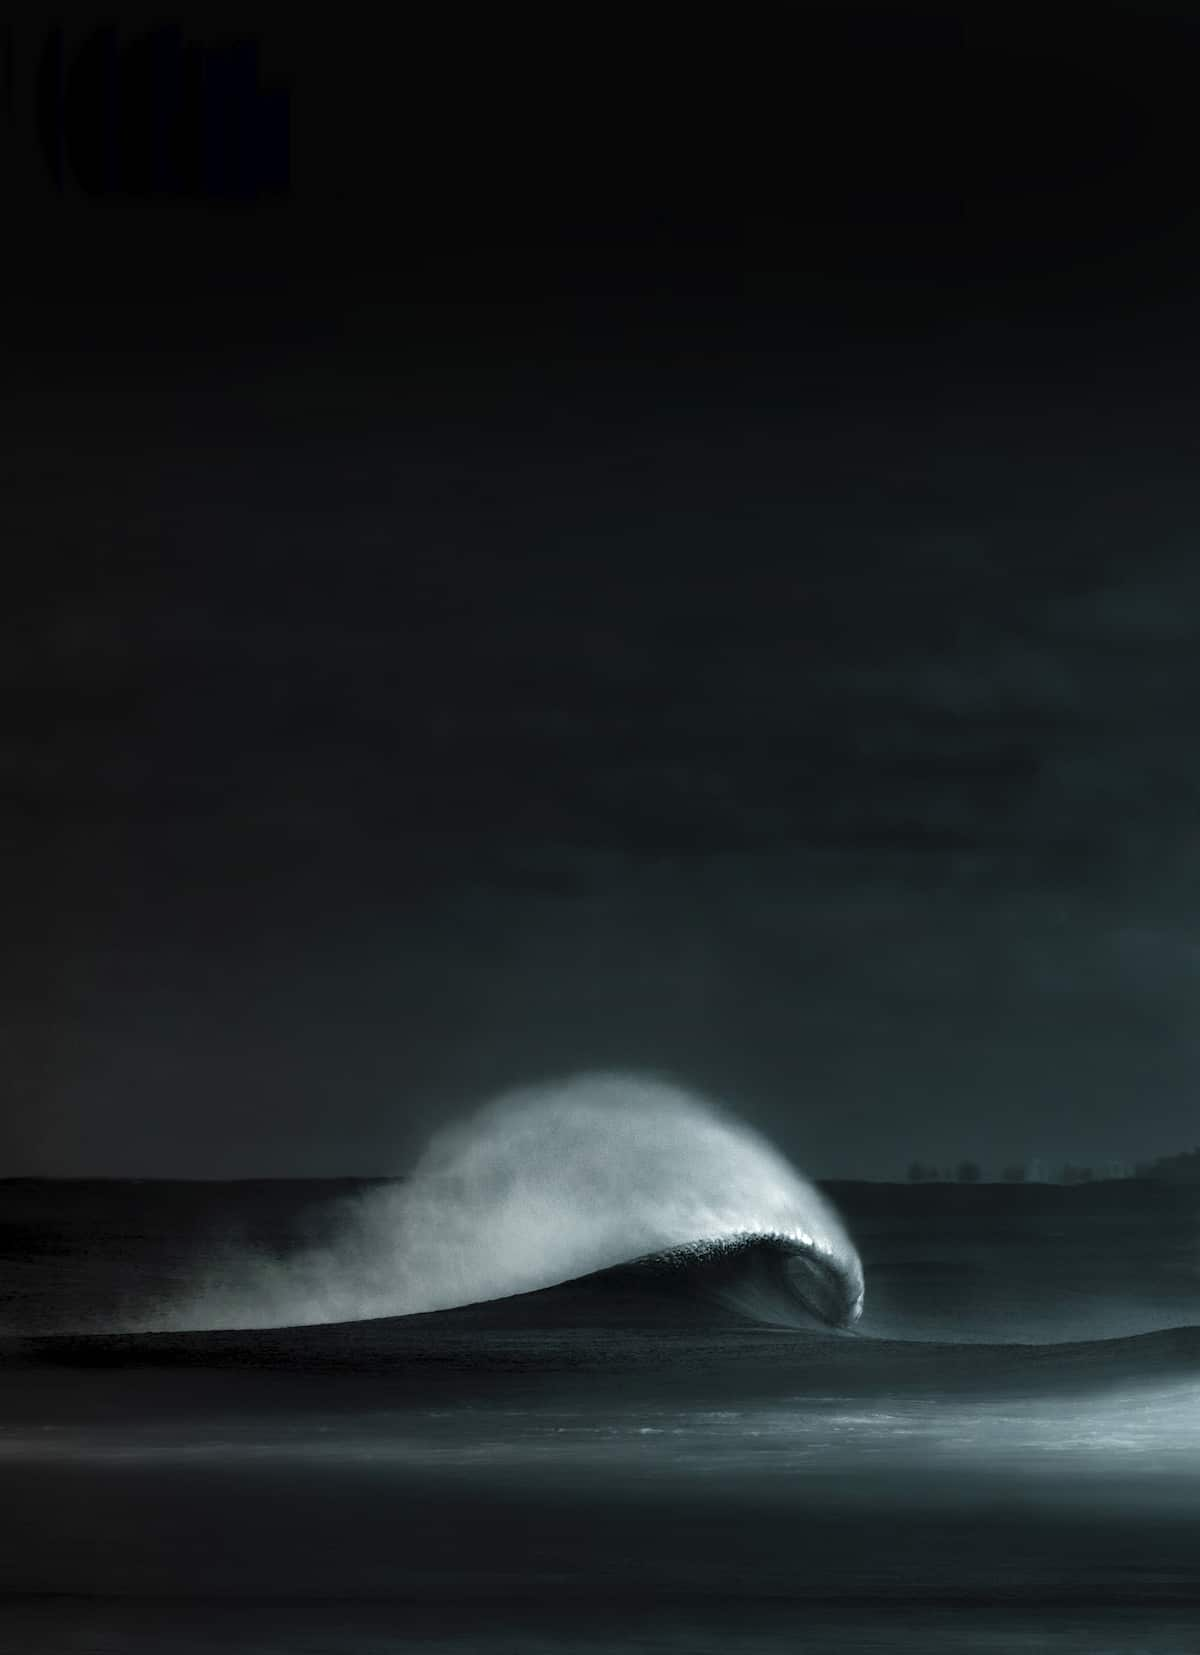 Artistic Photo of a Wave